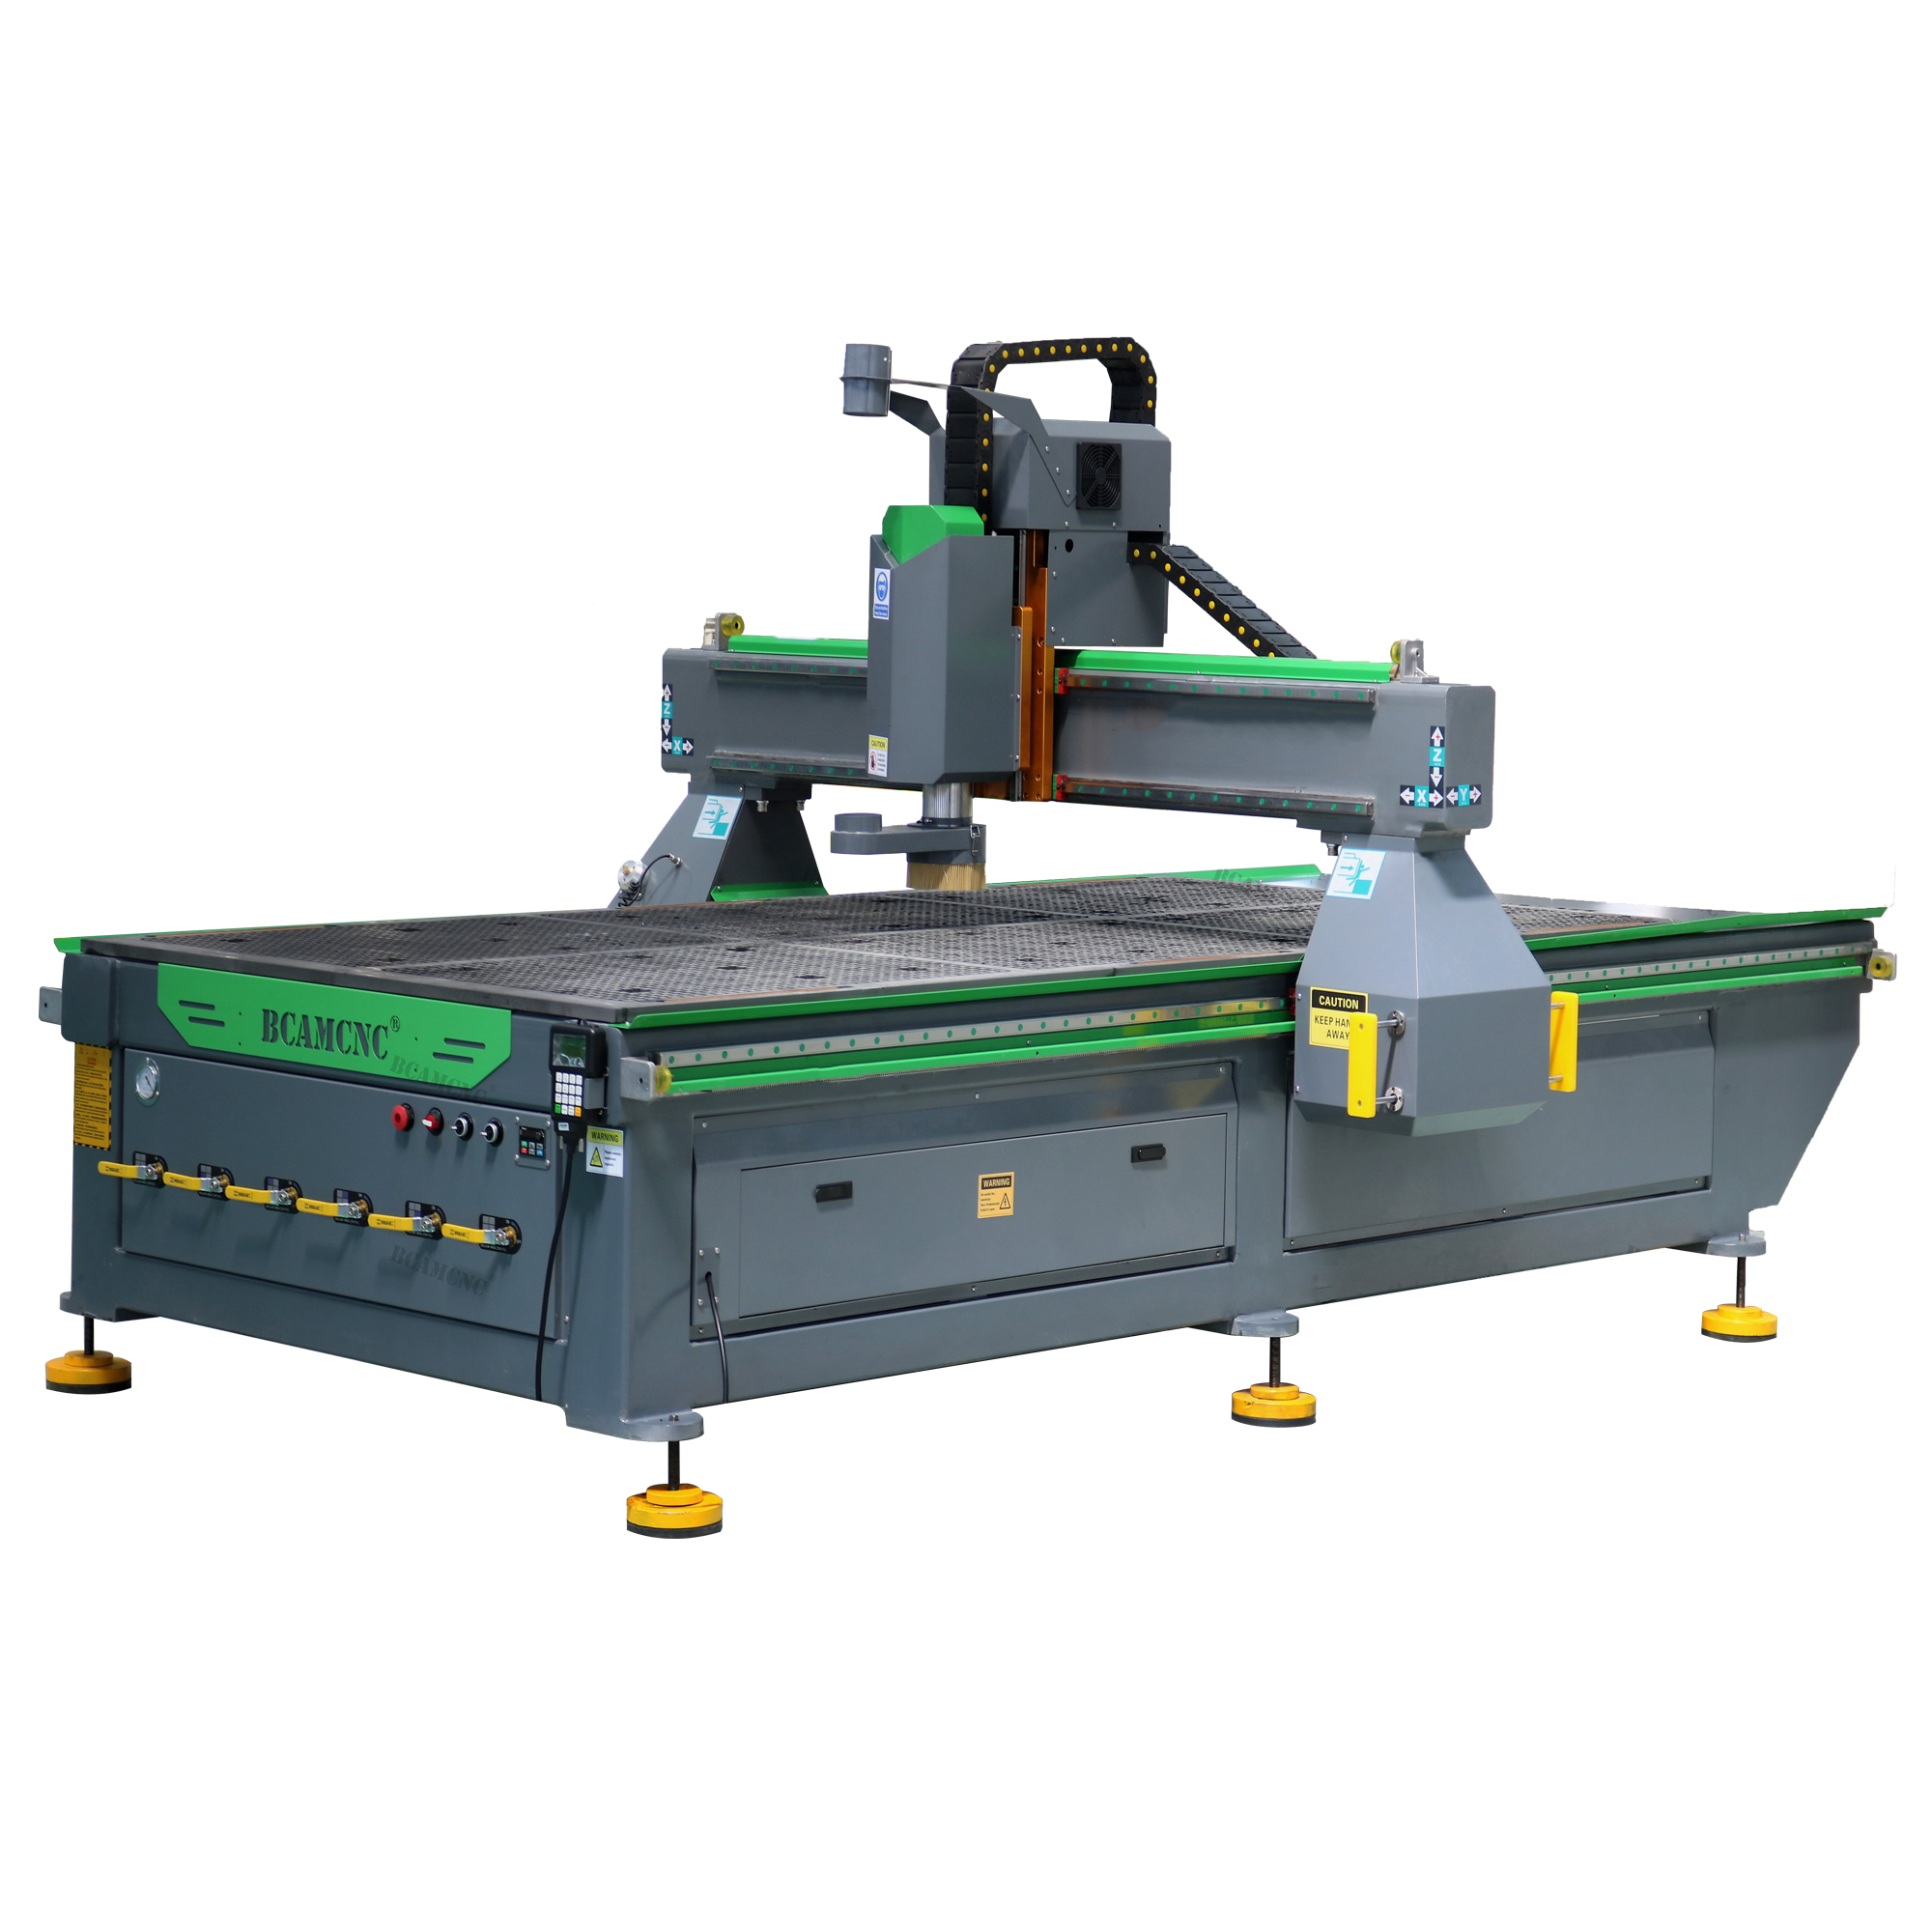 Factory supply 3d houtbewerking CNC router/Hout snijmachine voor solidwood, MDF, aluminium, alucobond, PVC